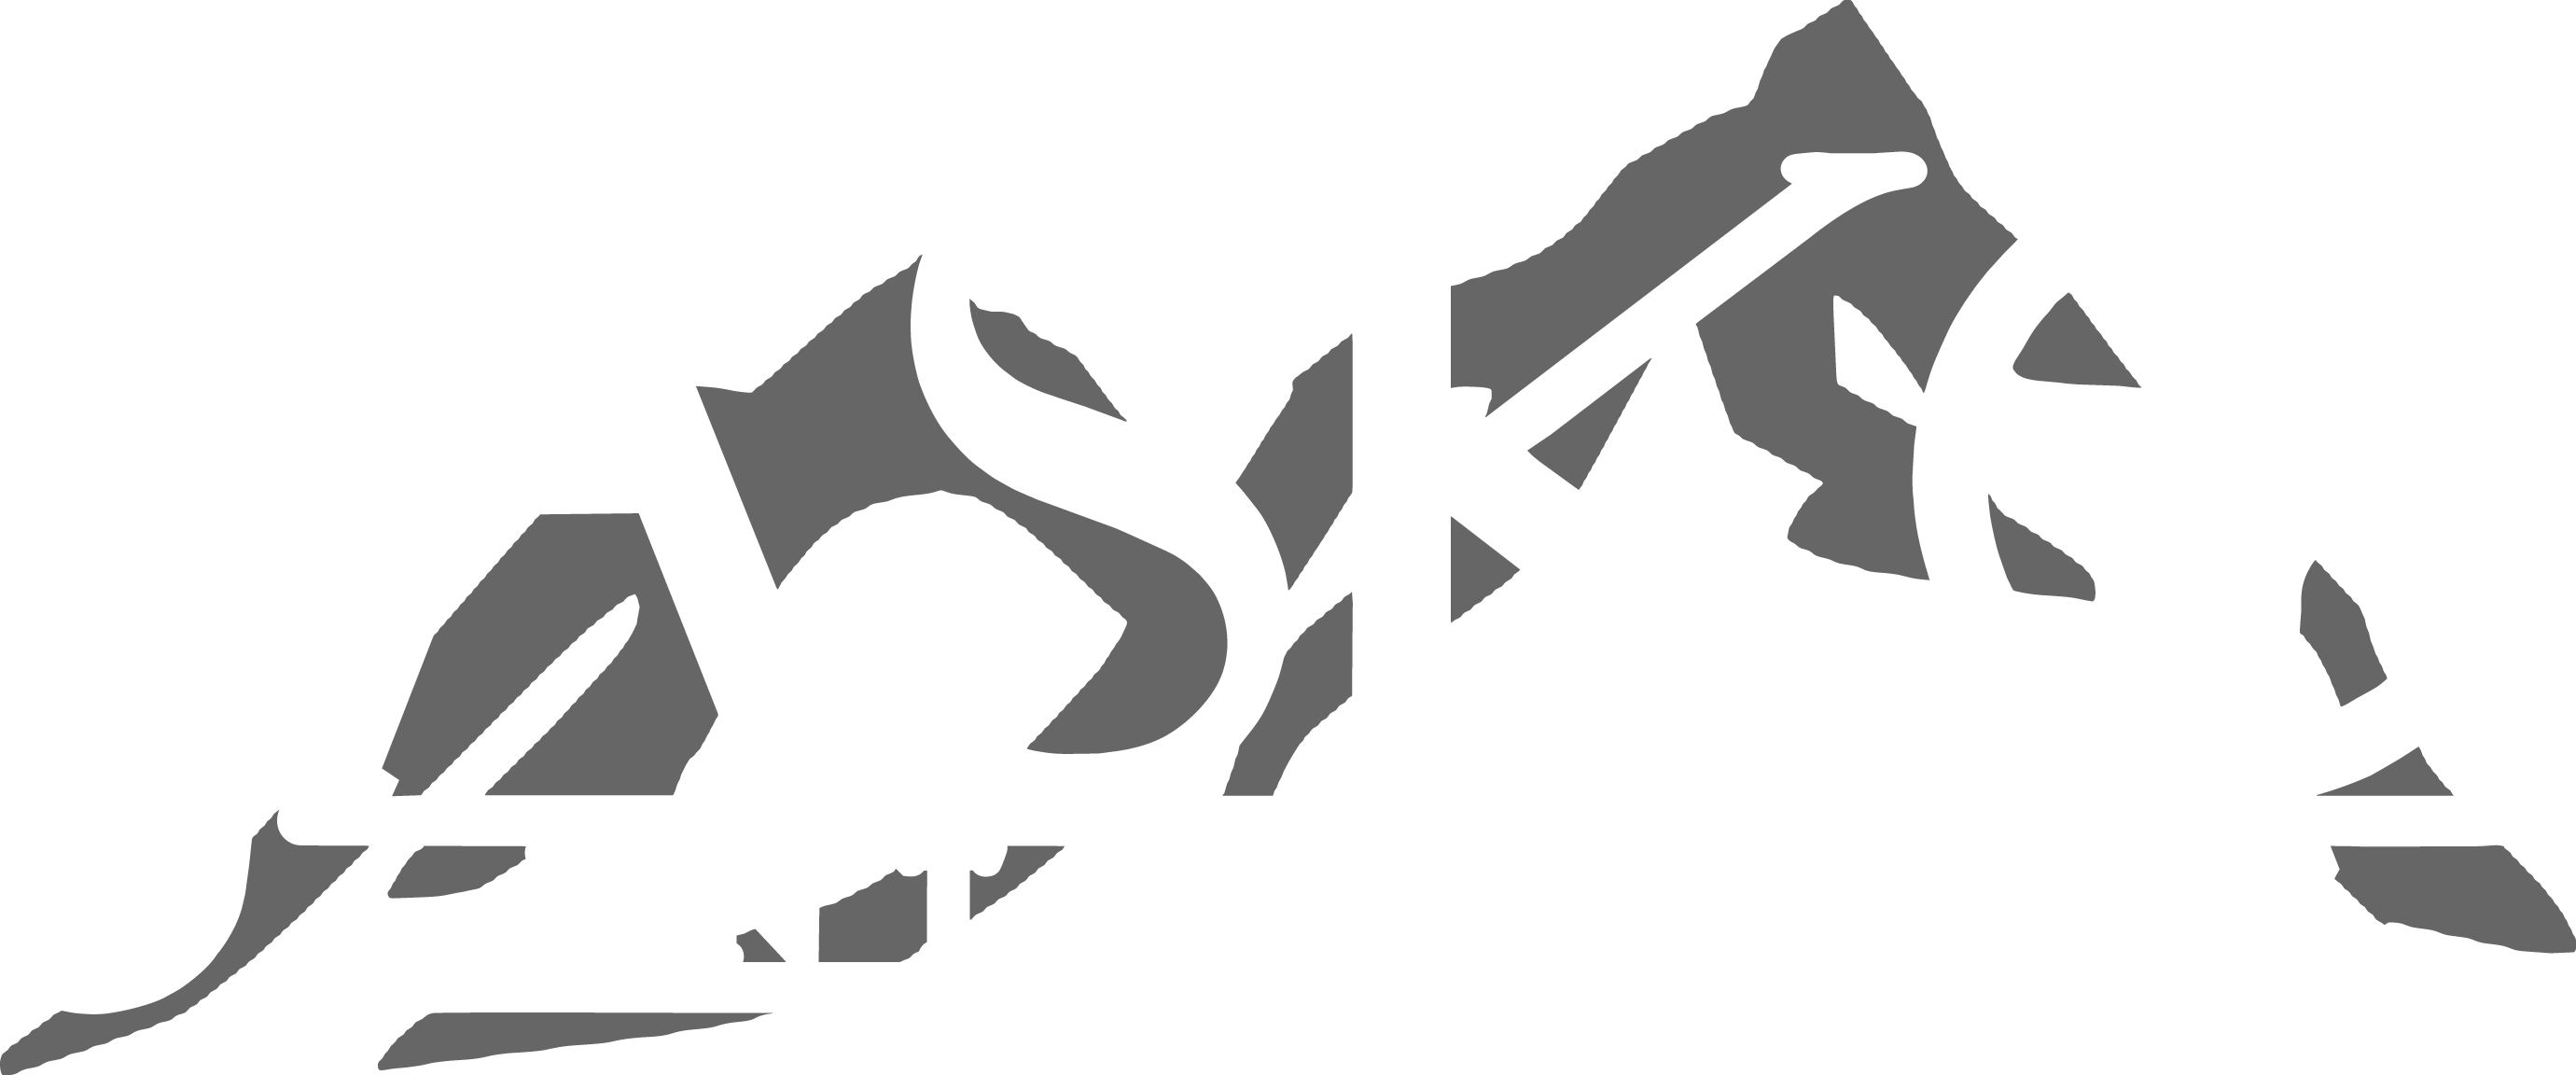 Jasko Enterprises Inc.